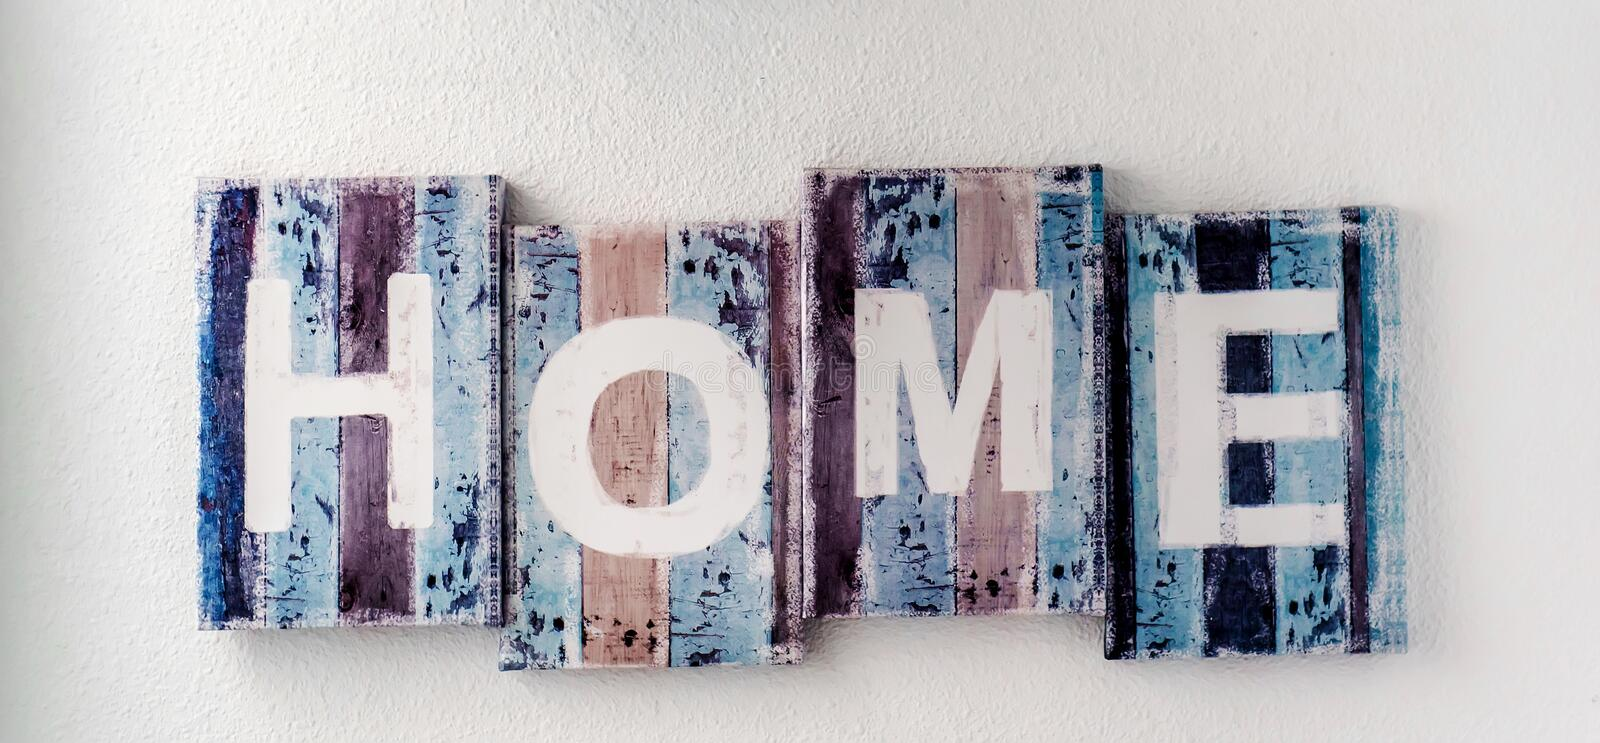 Handmade HOME sign. Wooden colorful planks over white wall background. Rustic decor